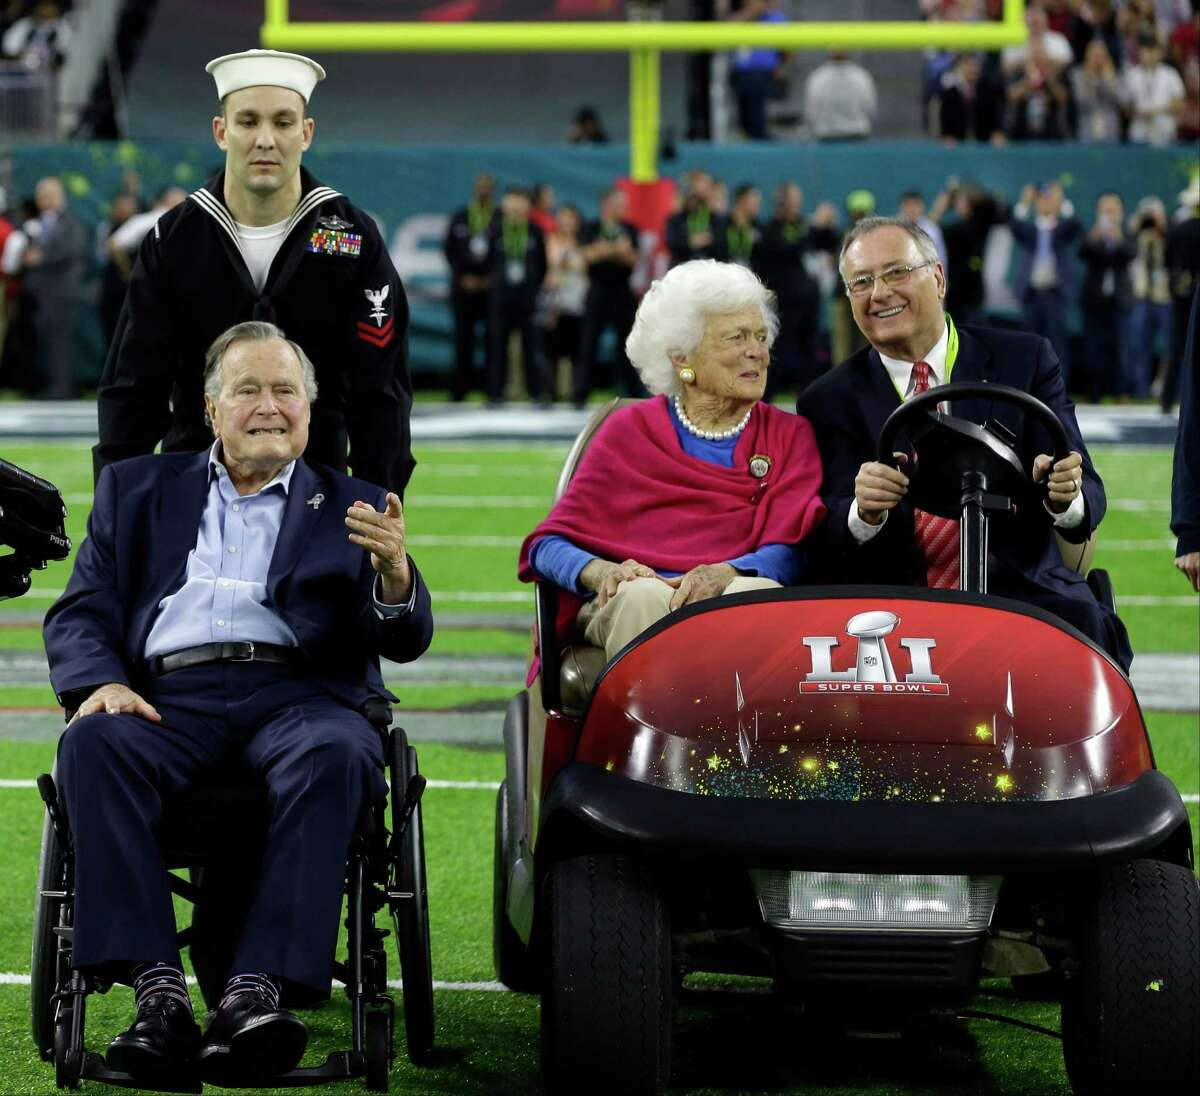 Former President George H.W. Bush and wife, Barbara, wave as they arrive on the field for a coin toss before the NFL Super Bowl 51 football game between the Atlanta Falcons and the New England Patriots Sunday, Feb. 5, 2017, in Houston. (AP Photo/David J. Phillip)